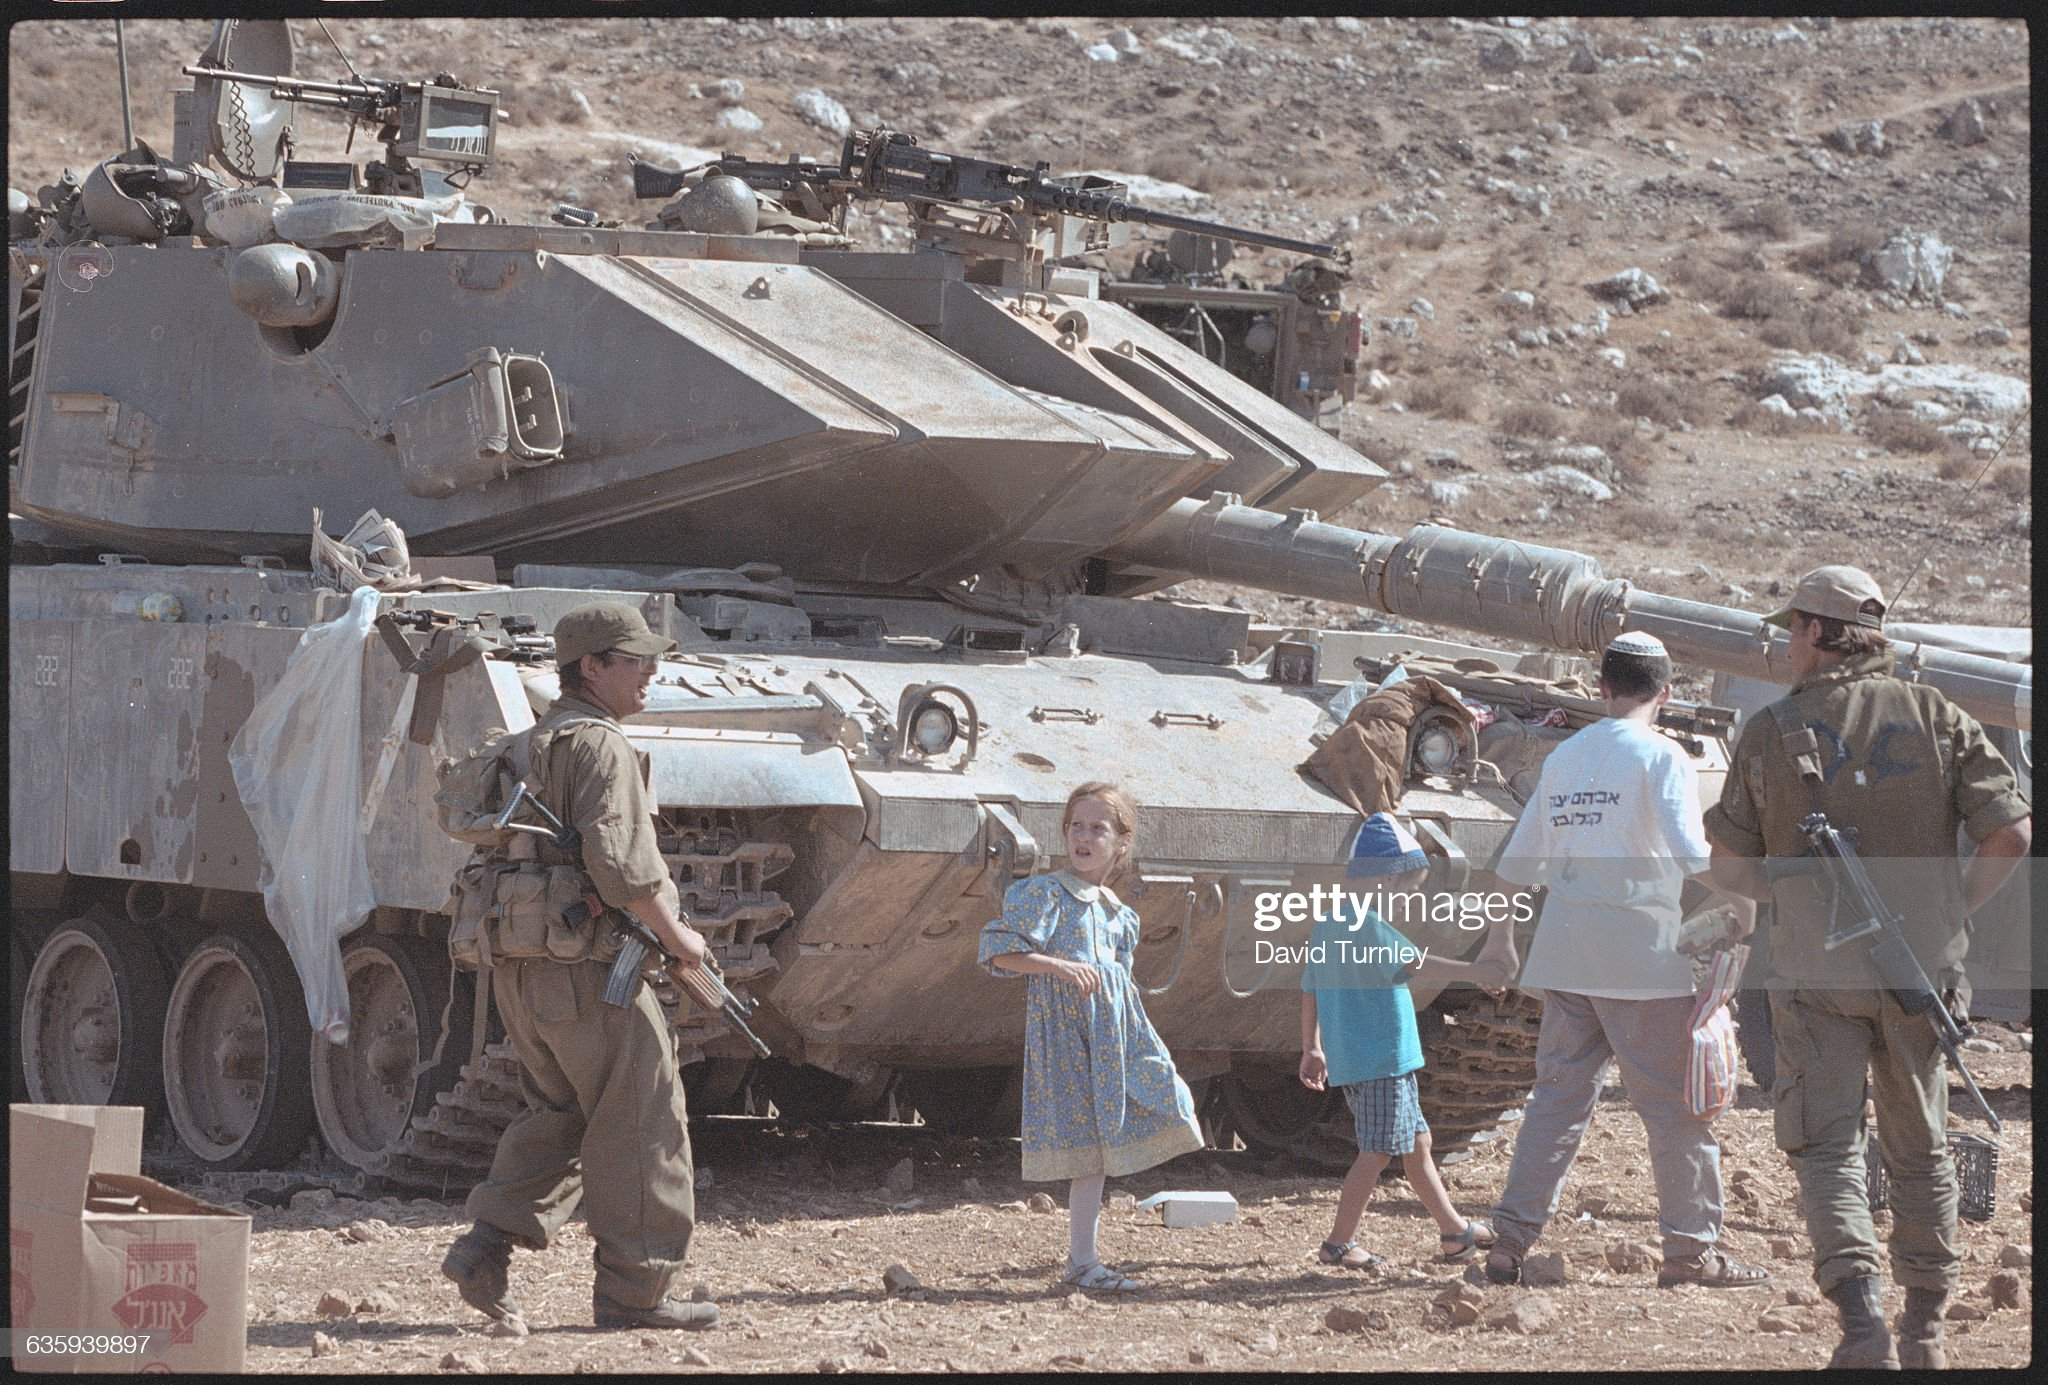 https://media.gettyimages.com/photos/people-walking-past-a-tank-picture-id635939897?s=2048x2048